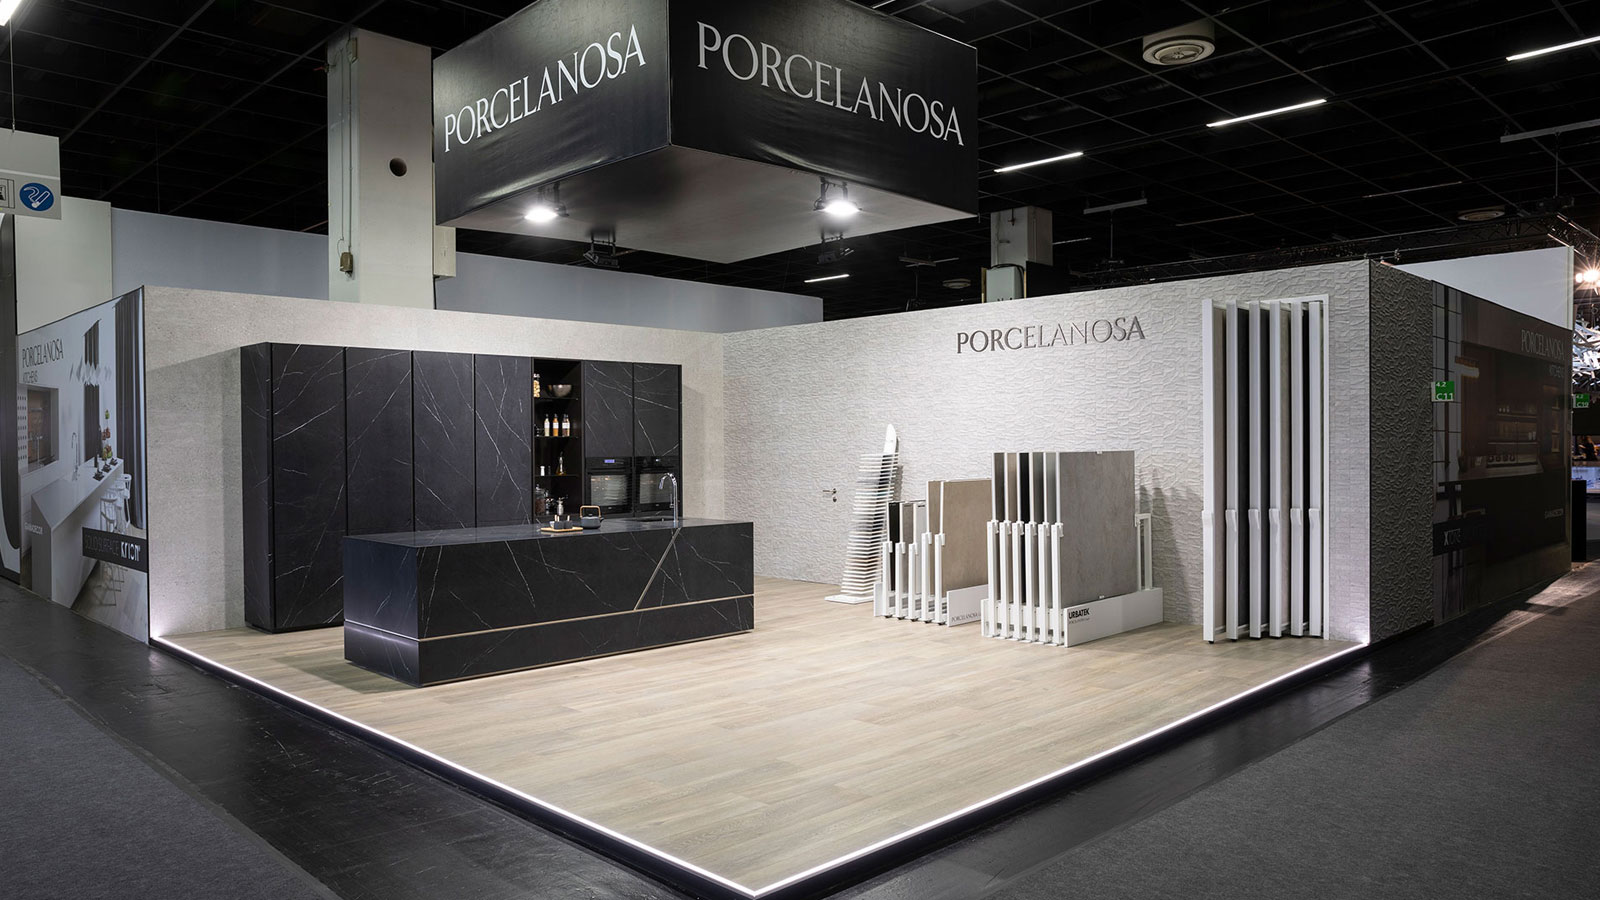 The PORCELANOSA Grupo will be present at the LivingKitchen Fair in Cologne